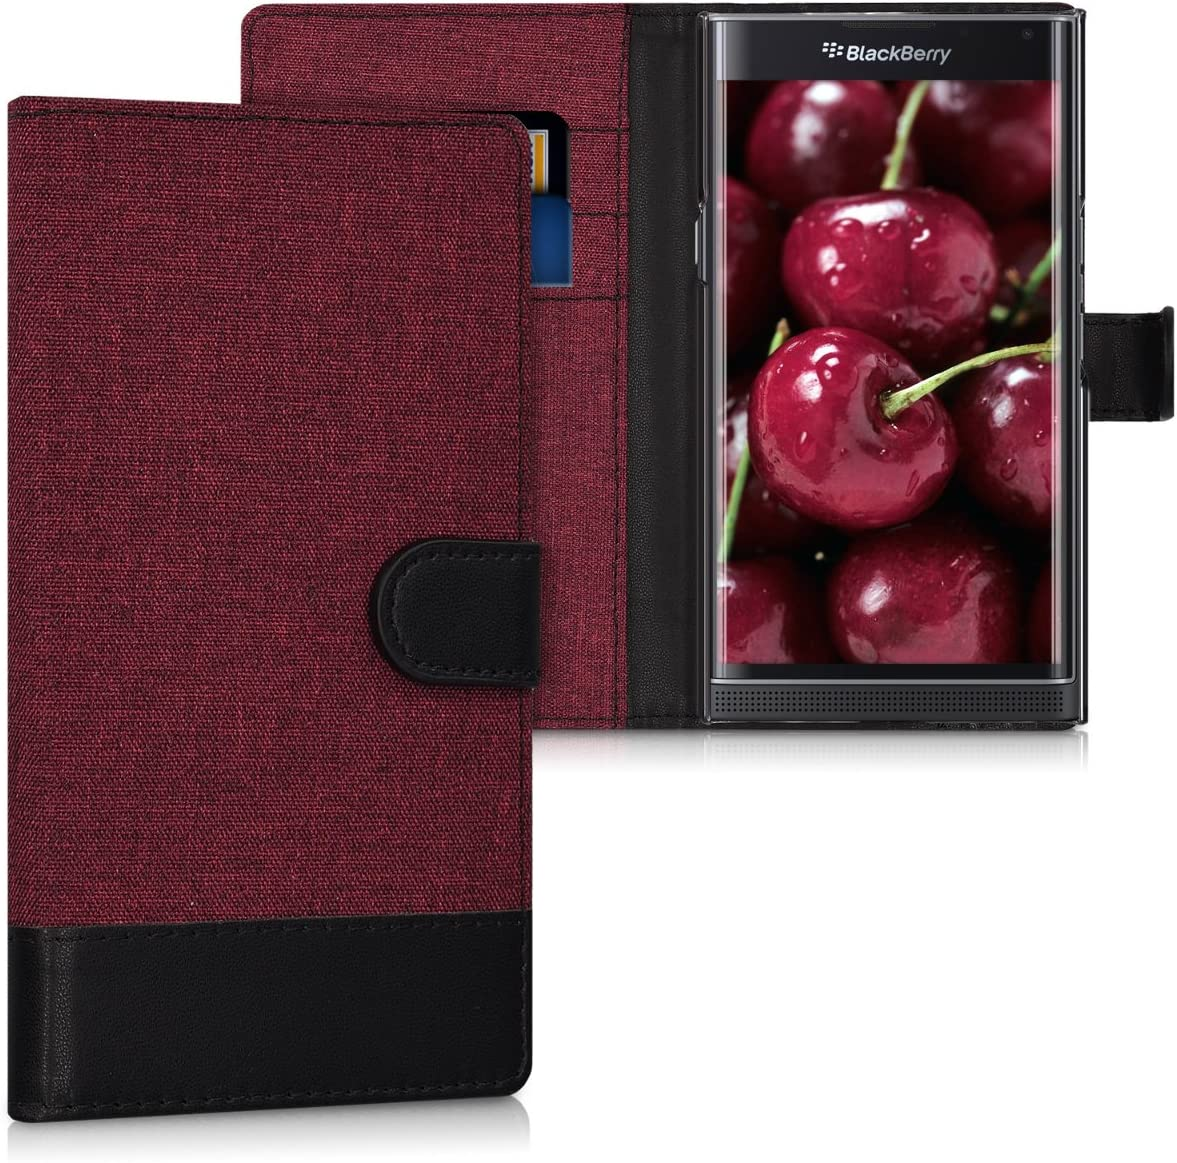 Wallet Case Compatible with BlackBerry Priv - Fabric Faux Leather Cover with Card Slots, Stand -